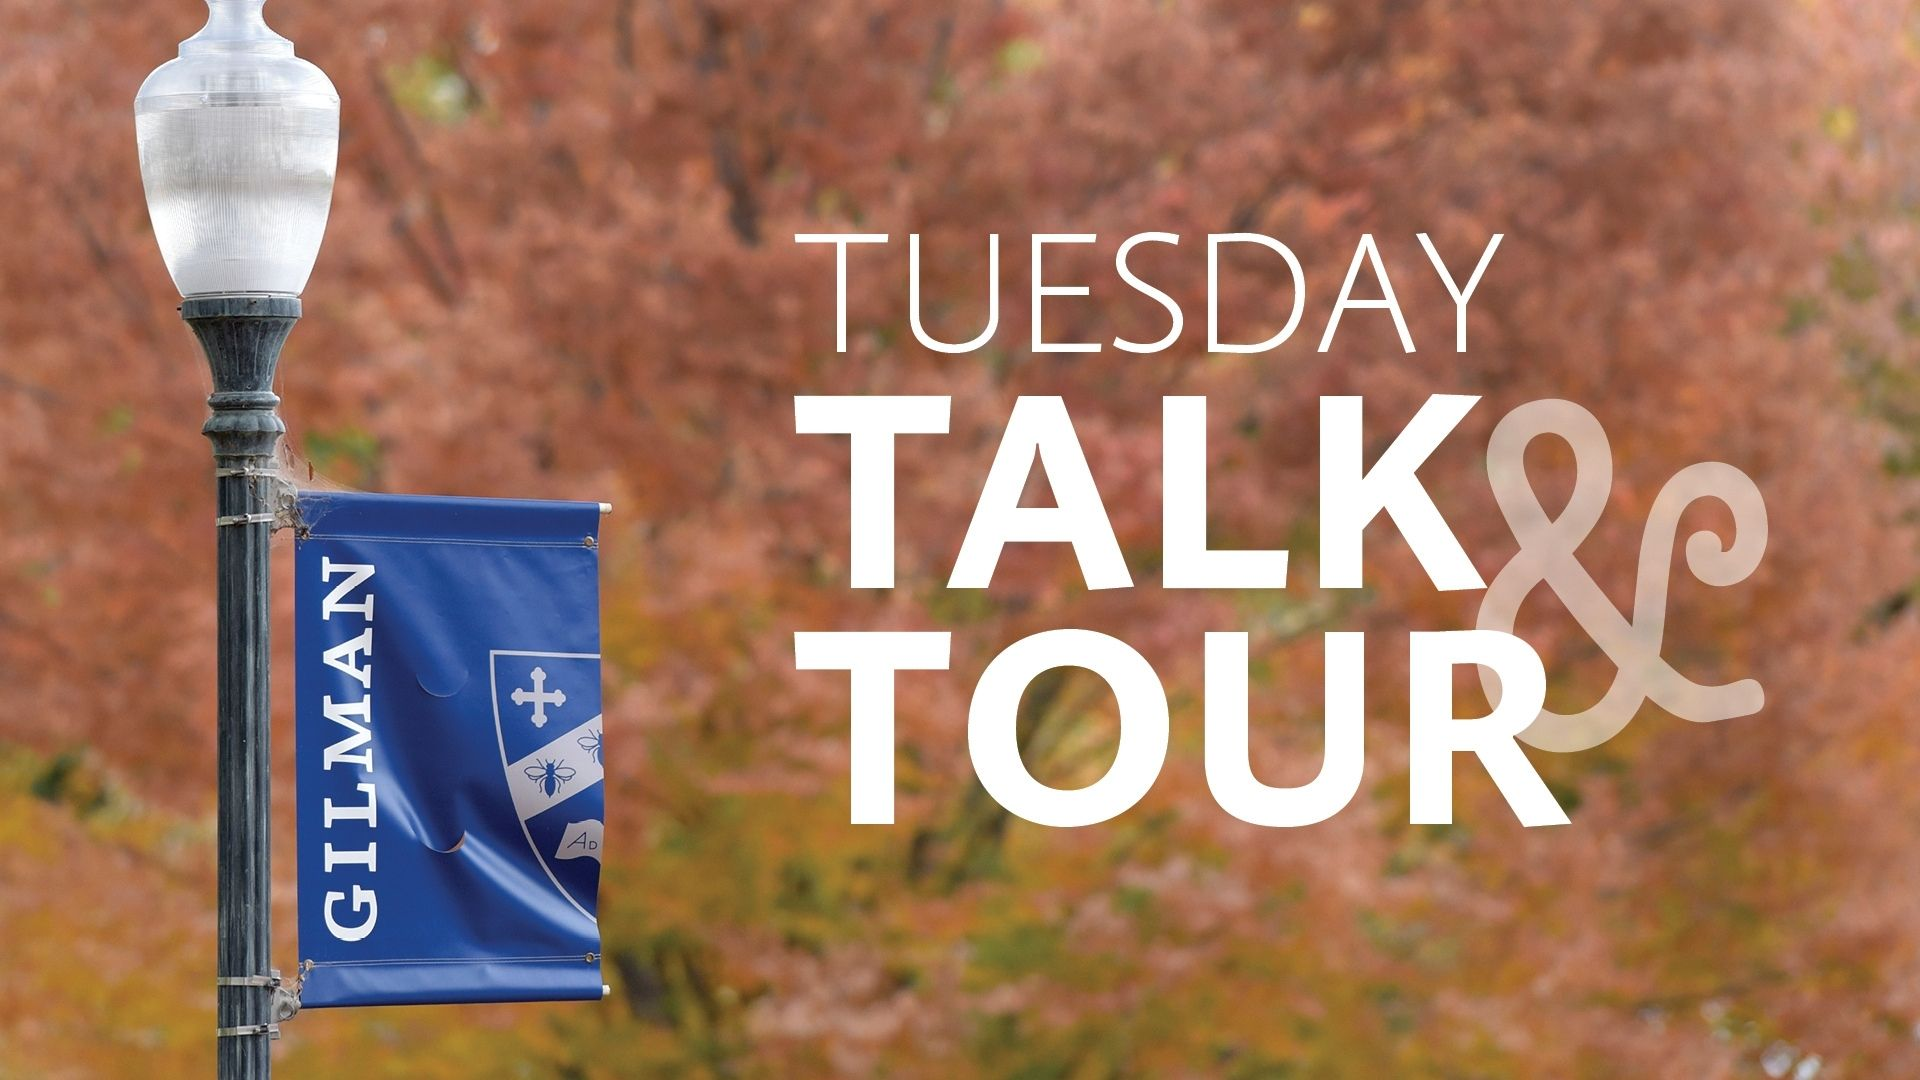 Tuesday Talk and Tour